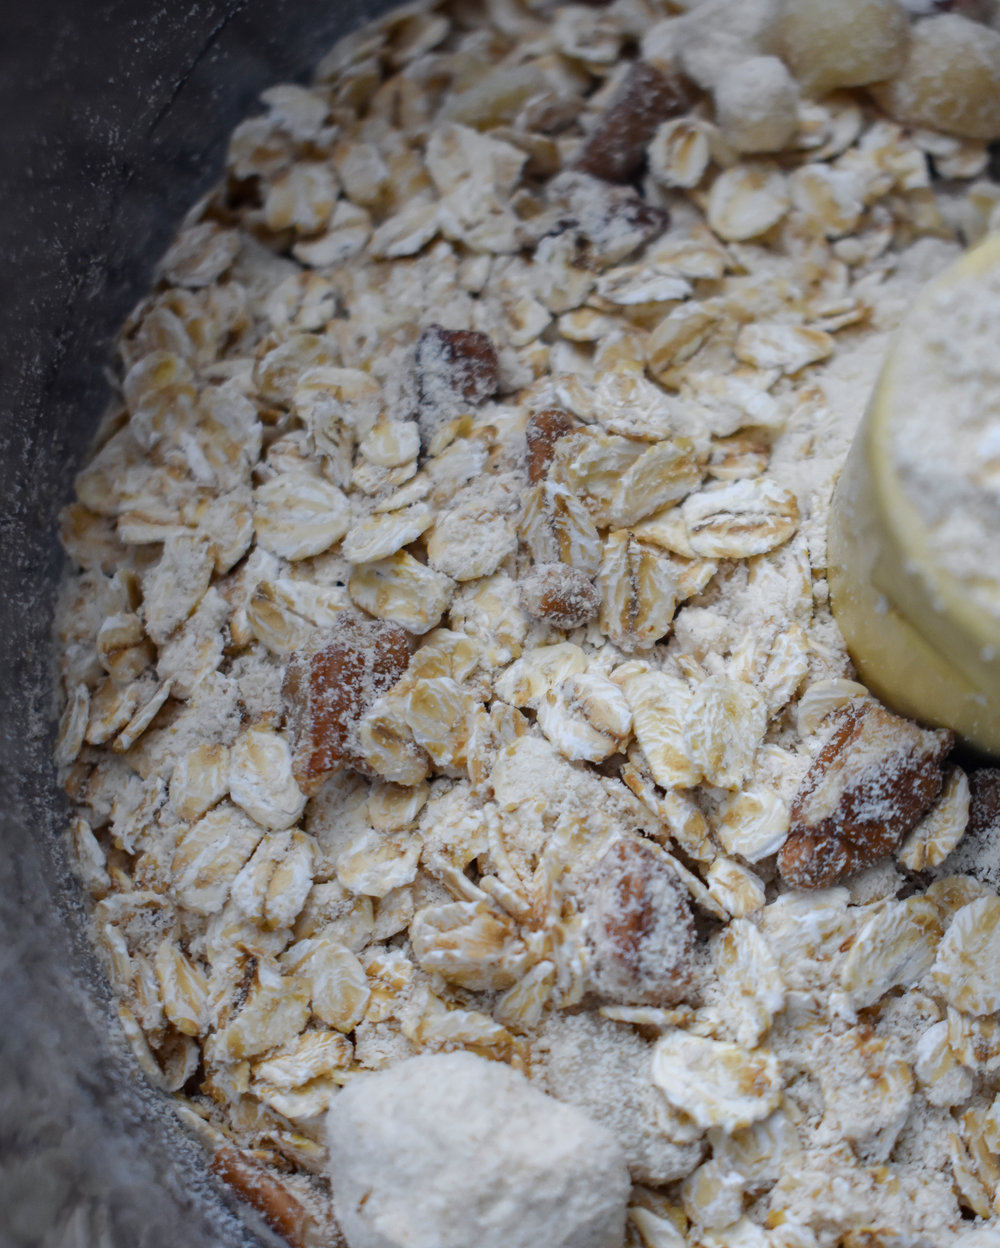 2. Next, add the dry ingredients for the crust (oats, nuts, coconut flour) to a food processor. Pulse until a fine meal is formed. About 15-20 times.